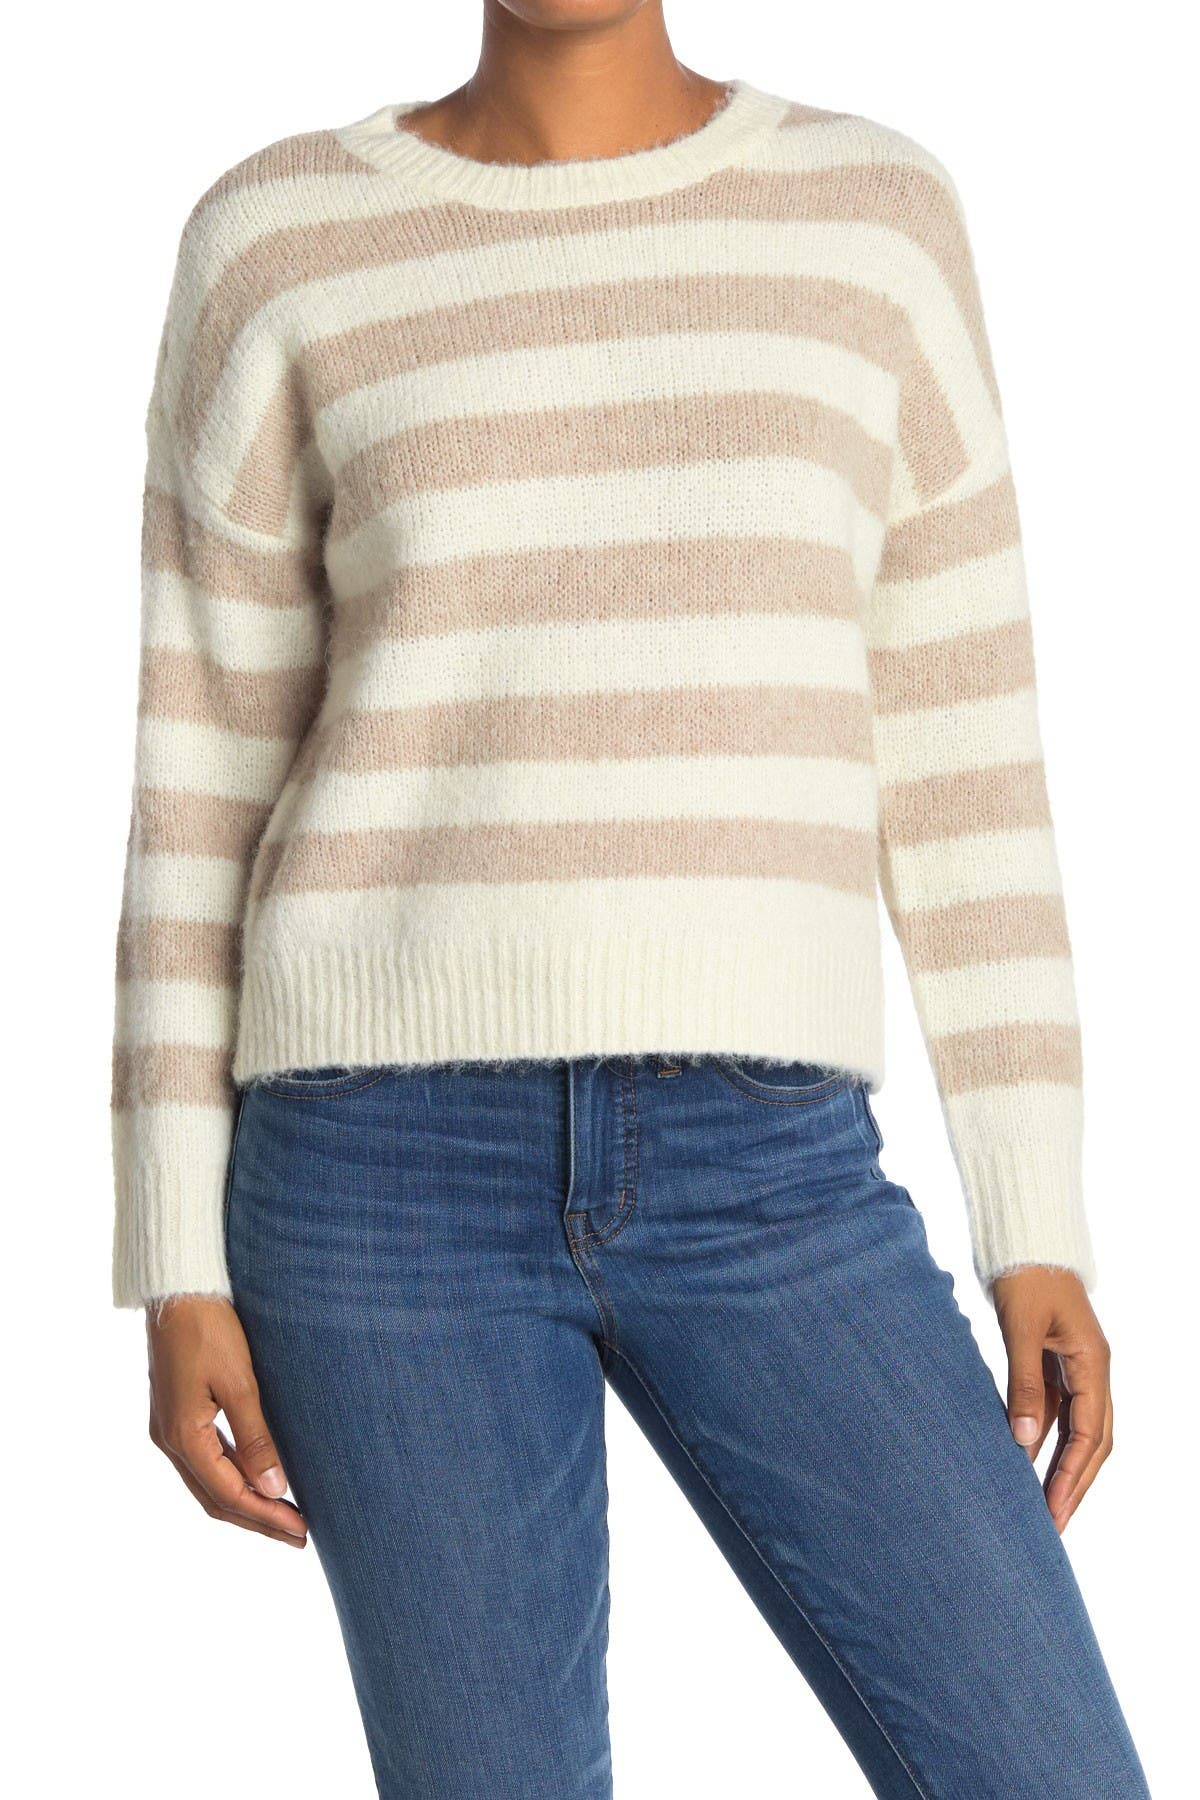 Image of THREAD AND SUPPLY Stripe Print Pullover Sweater